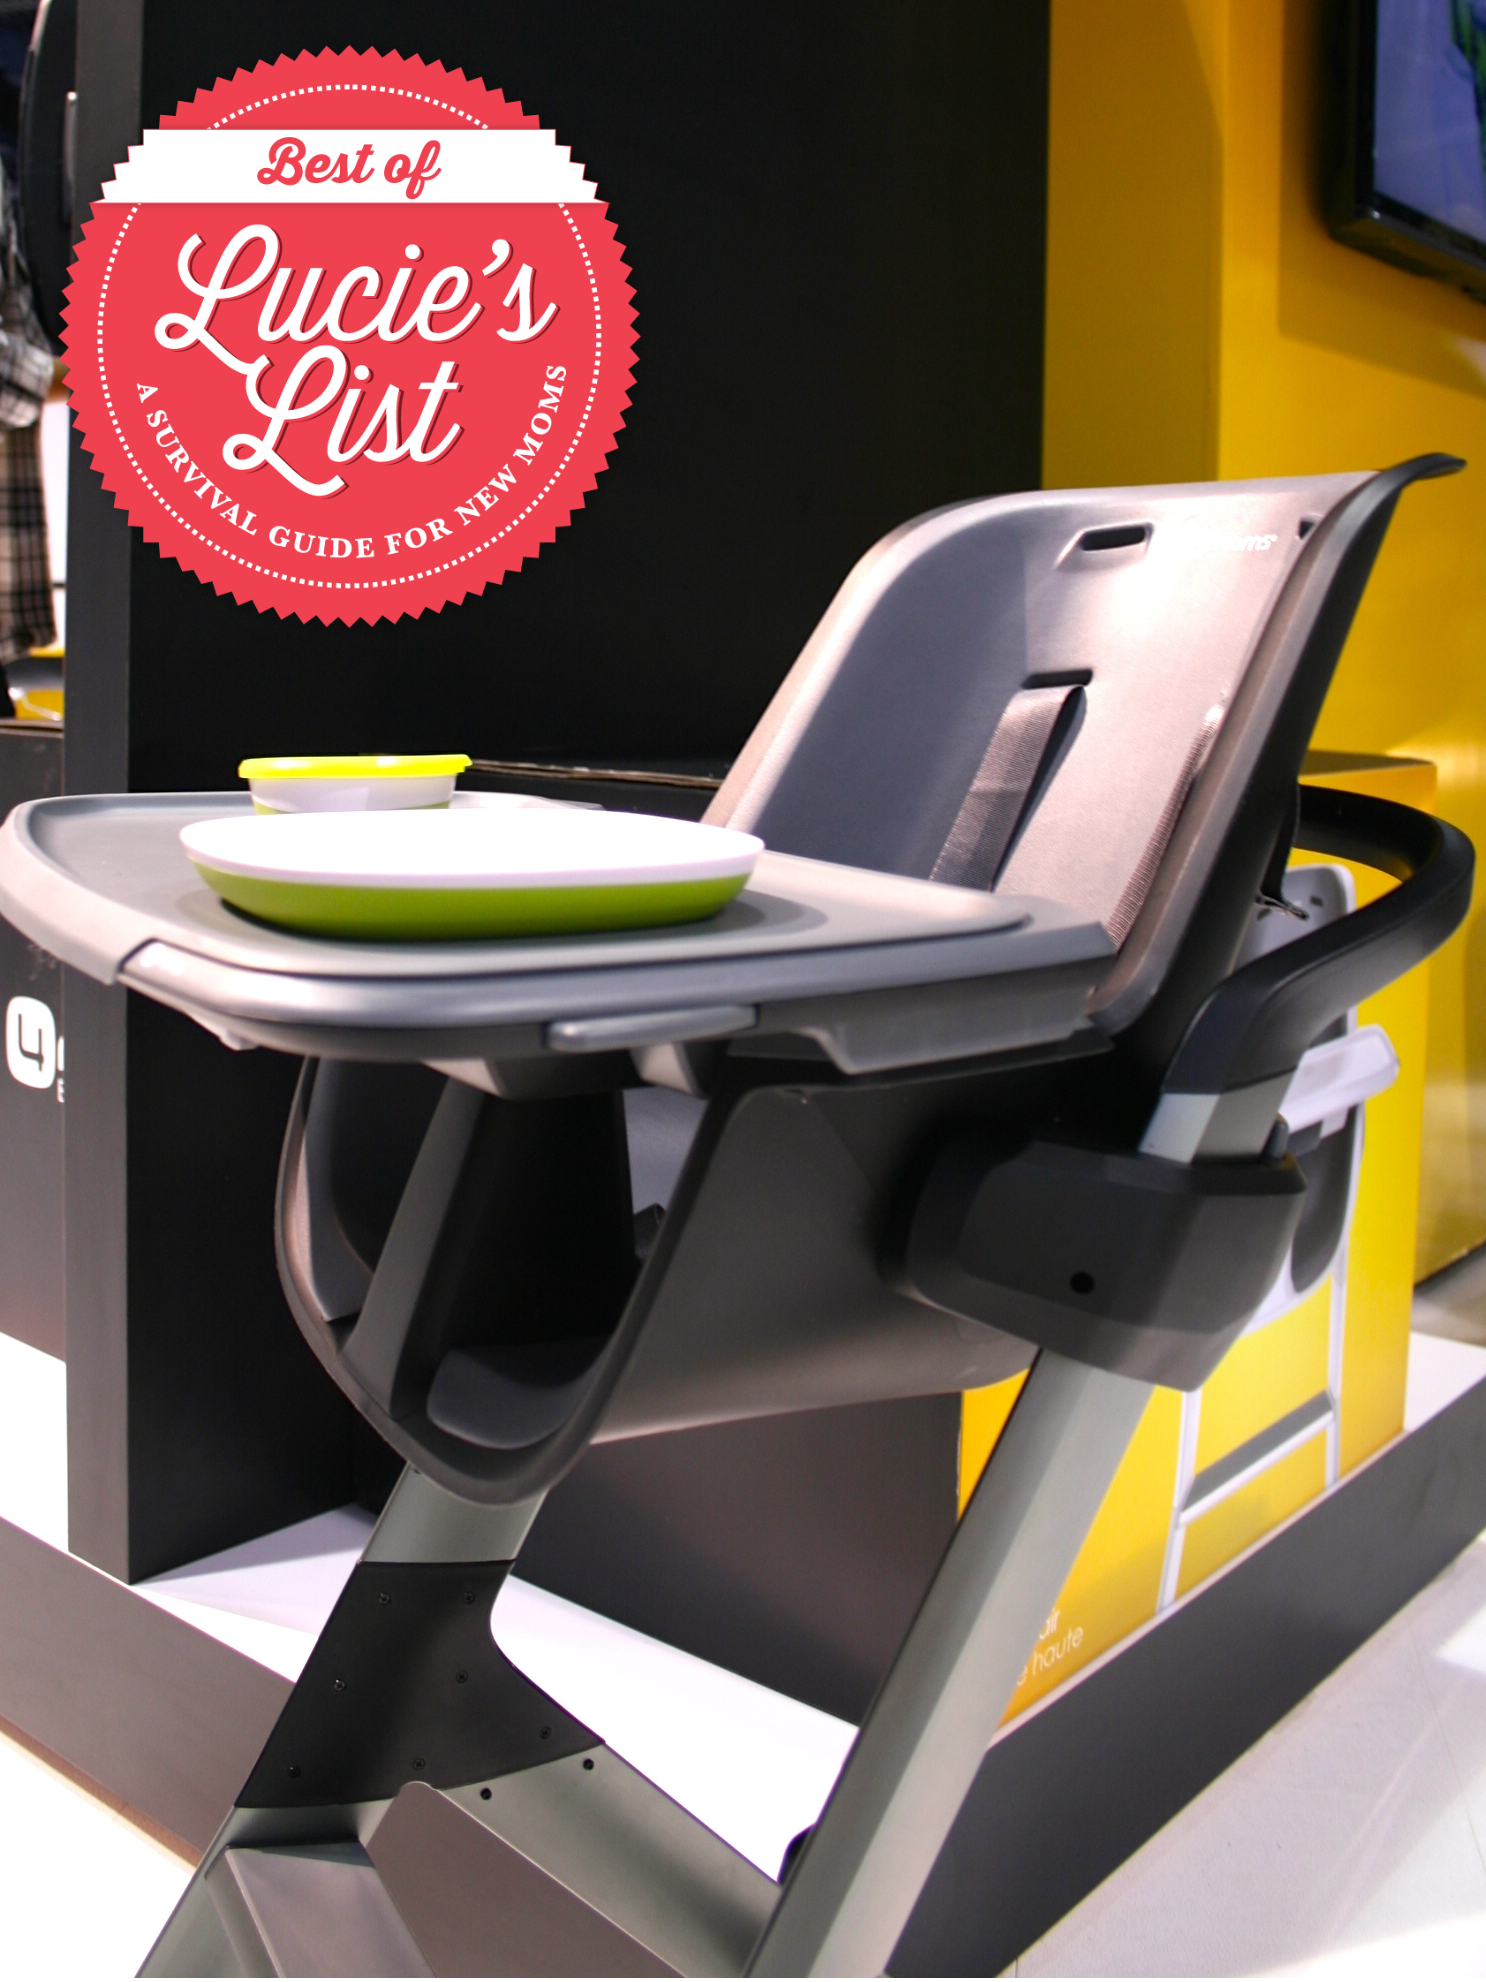 4 Moms High Chair Best In Show 2015 Abc Kids Expo Lucie 39s List Lucie 39s List